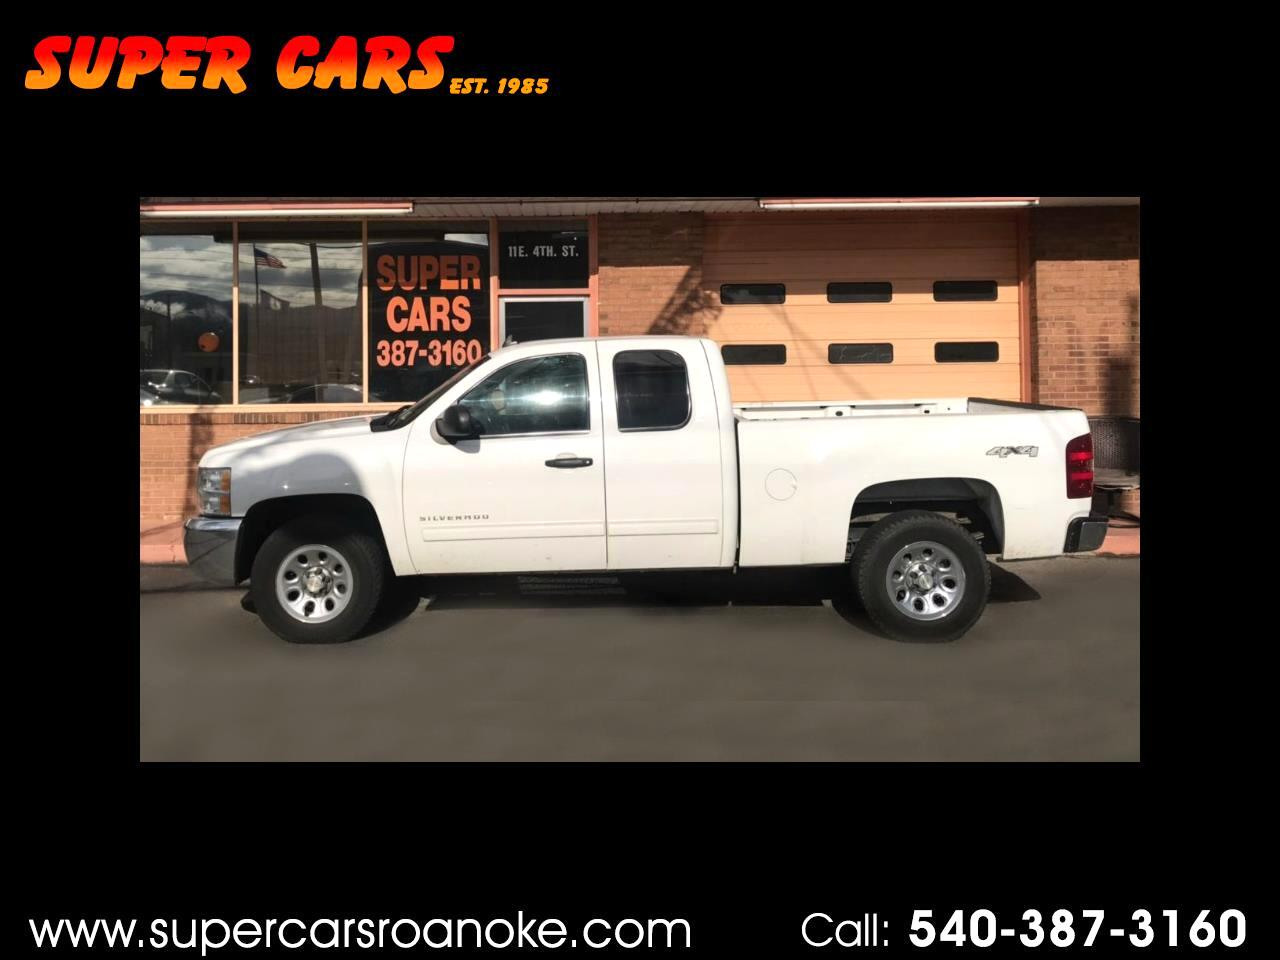 2012 Chevrolet Silverado 1500 Ext. Cab Short Bed 4WD